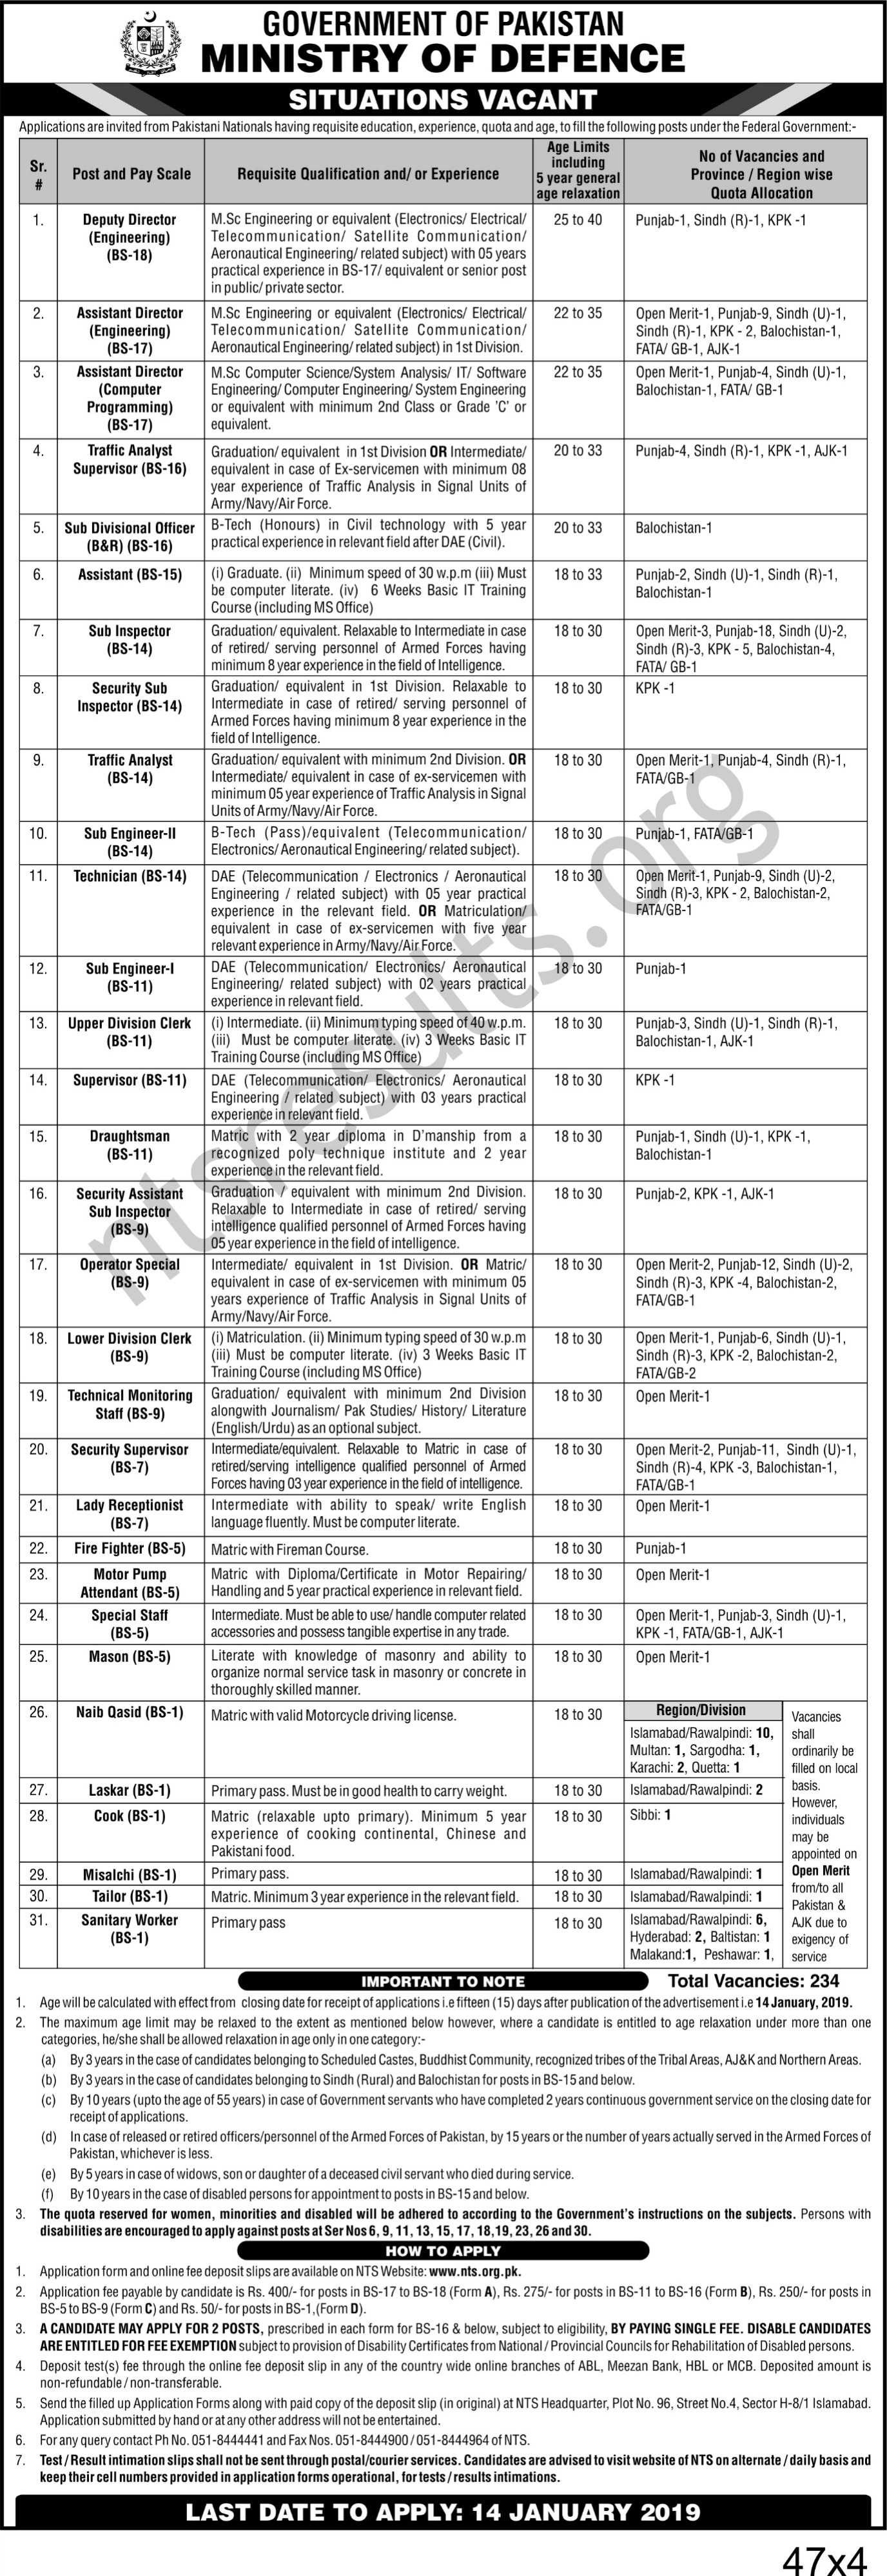 Government of Pakistan Ministry of Defence Jobs Via NTS